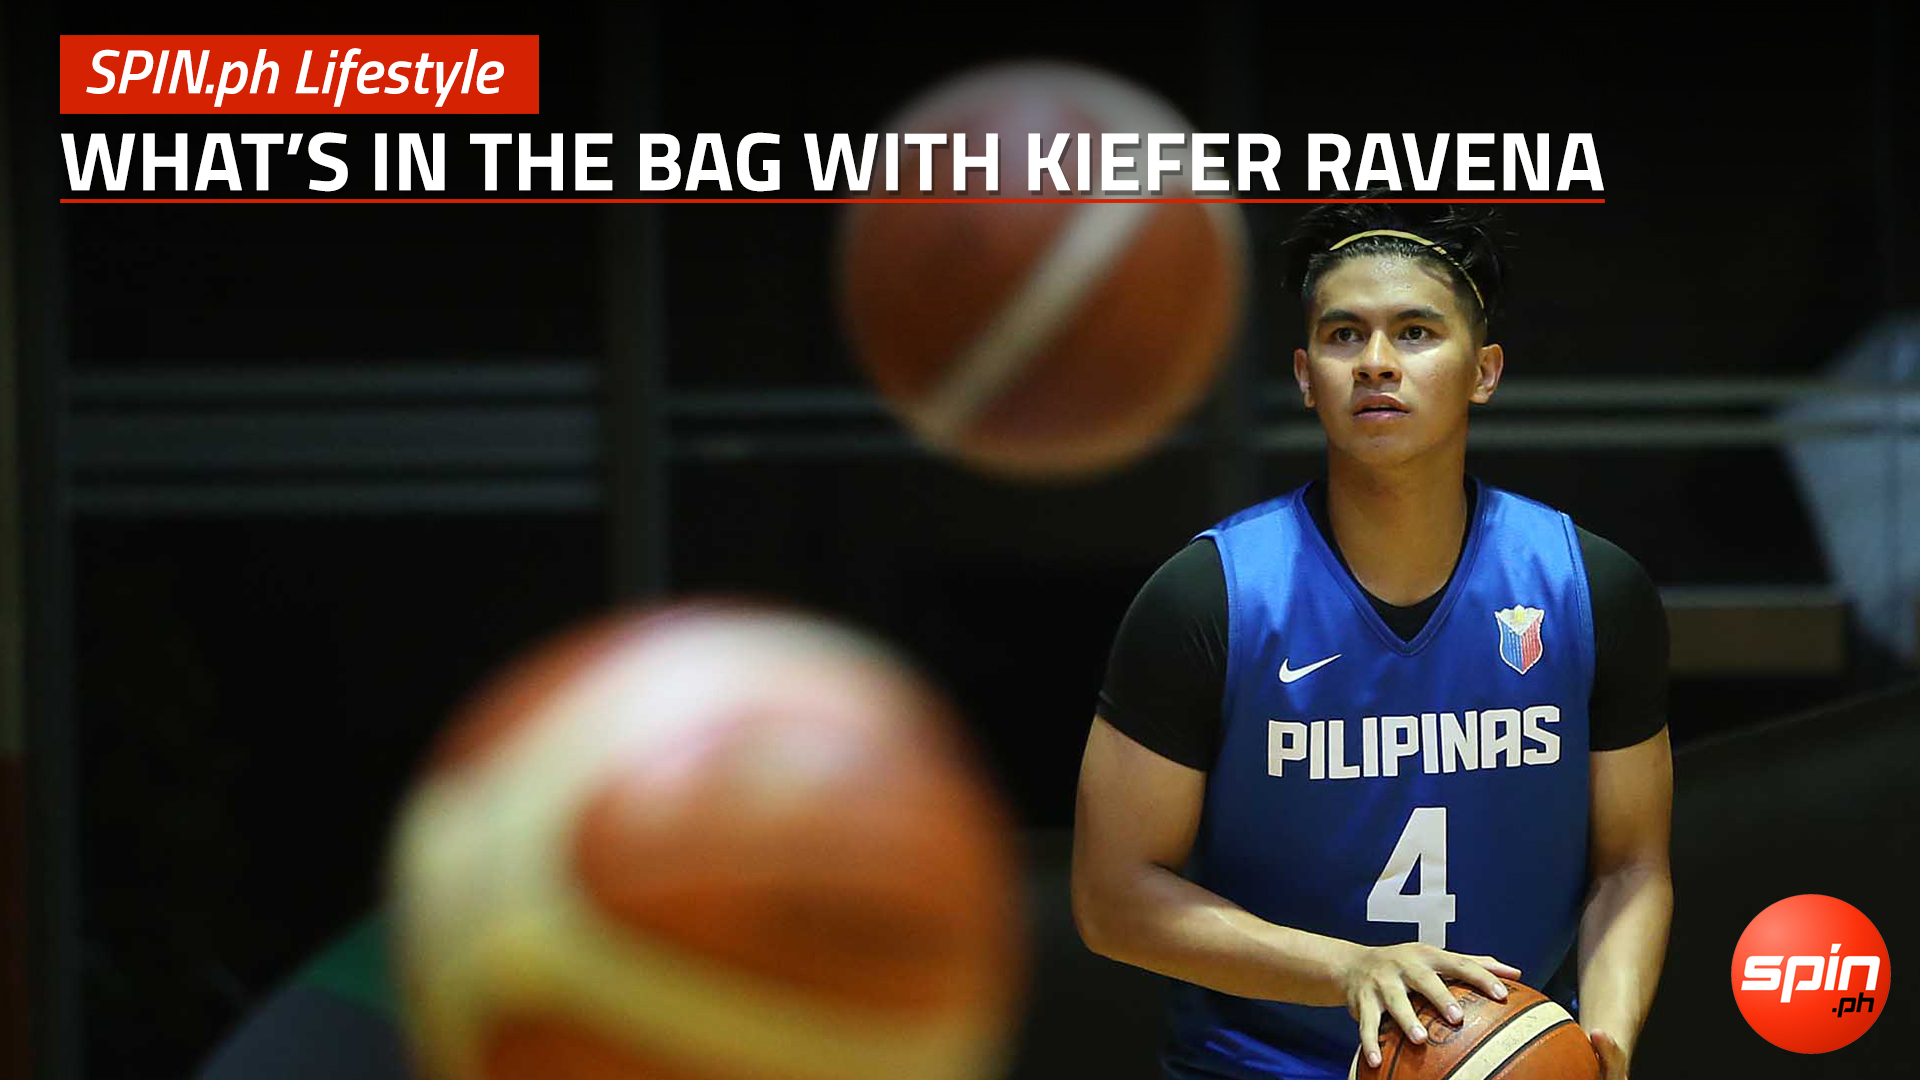 SPIN.ph Lifestyle: What's in the bag with Kiefer Ravena